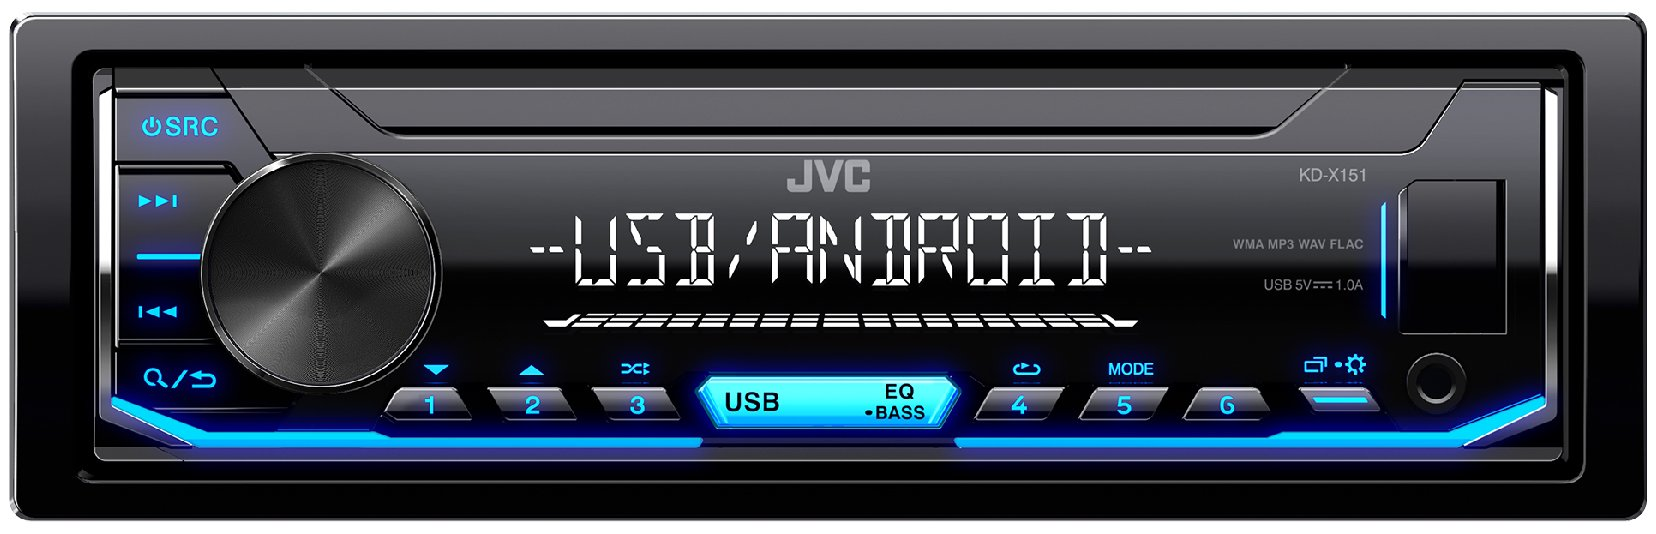 JVC-KD-X151-Digital-Media-Receiver